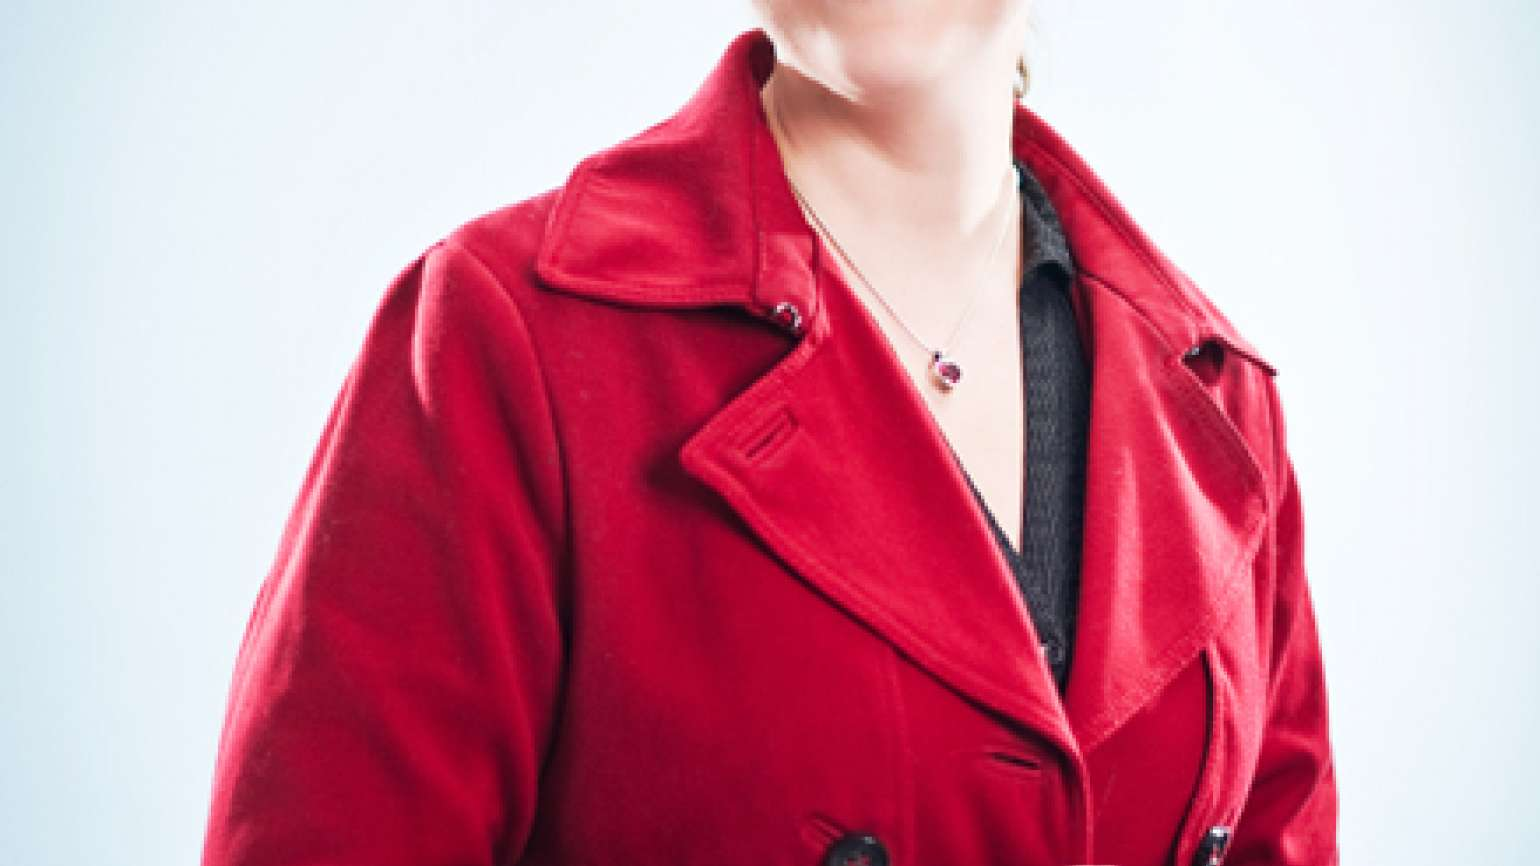 A woman wearing a red woolen coat